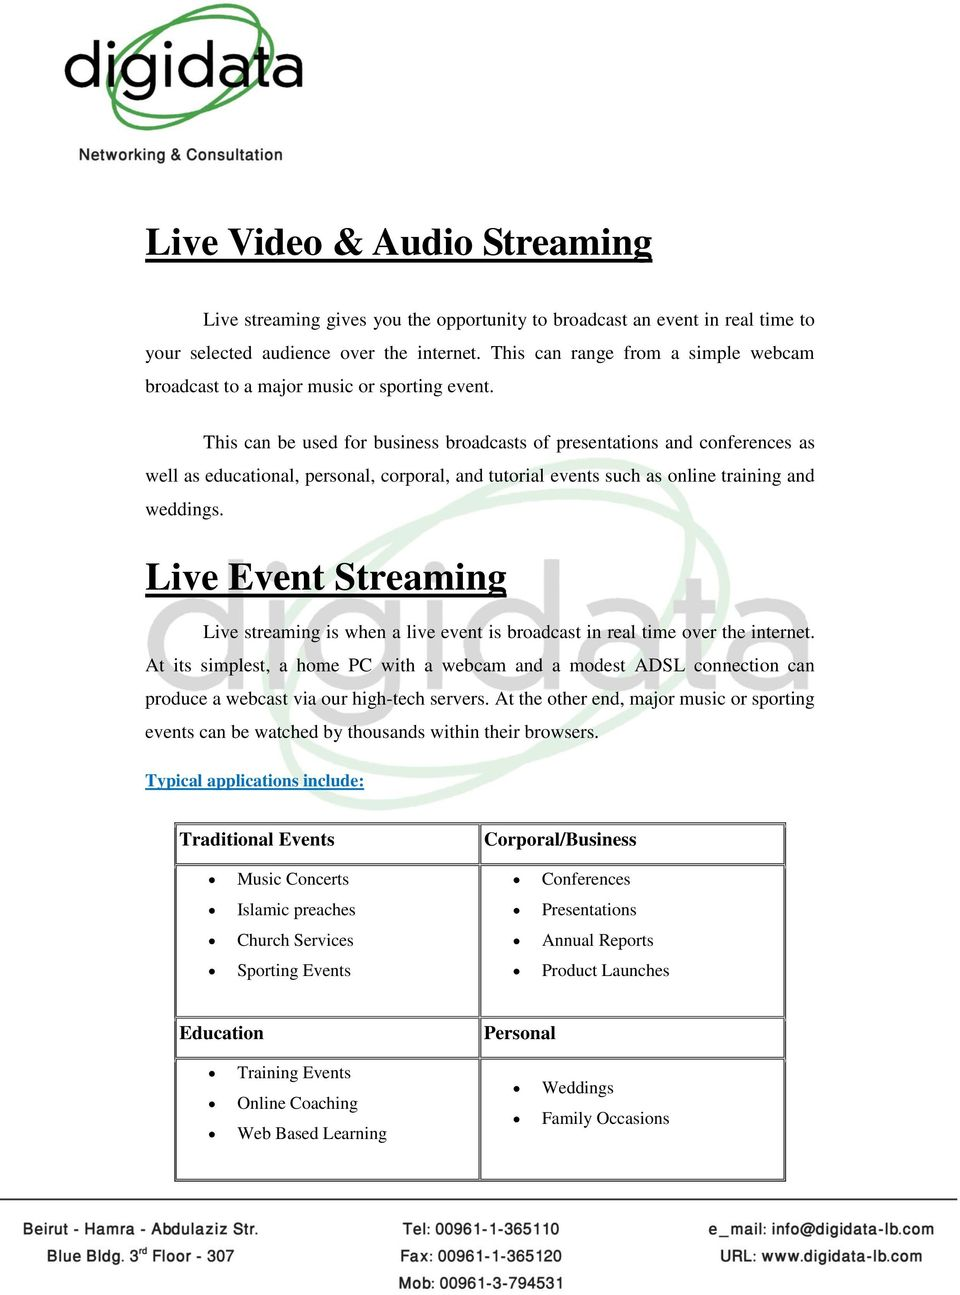 This can be used for business broadcasts of presentations and conferences as well as educational, personal, corporal, and tutorial events such as online training and weddings.